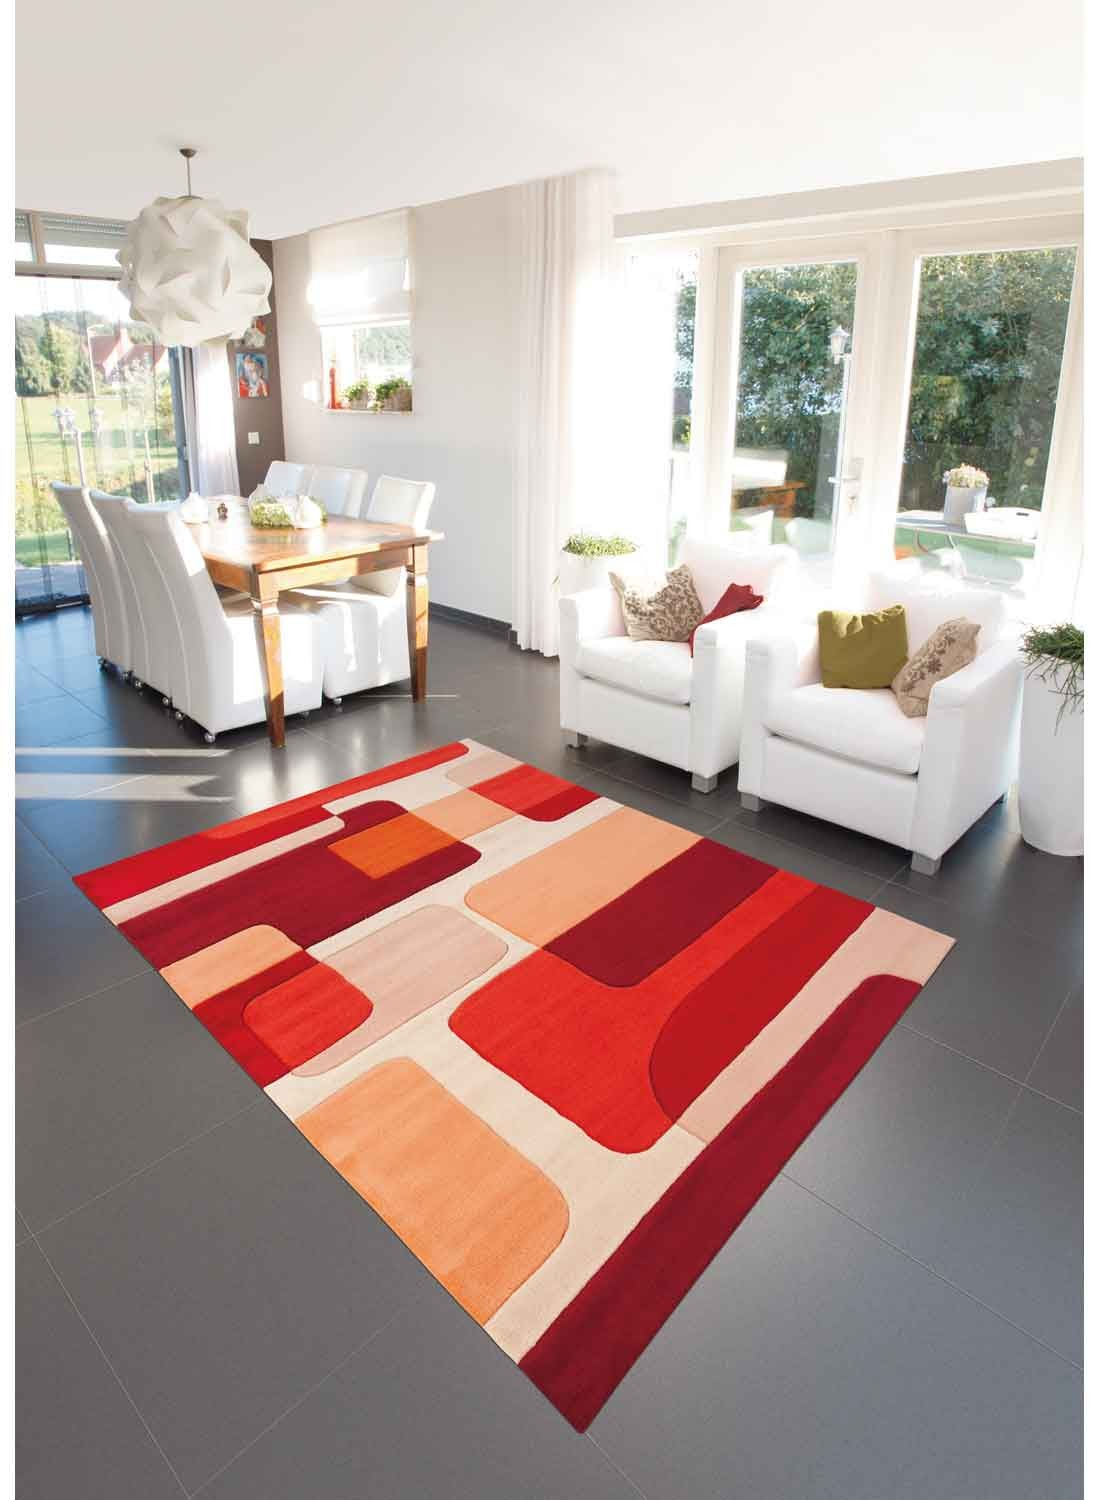 Tapis arte espina id es de d coration int rieure for Catalogue decoration interieure